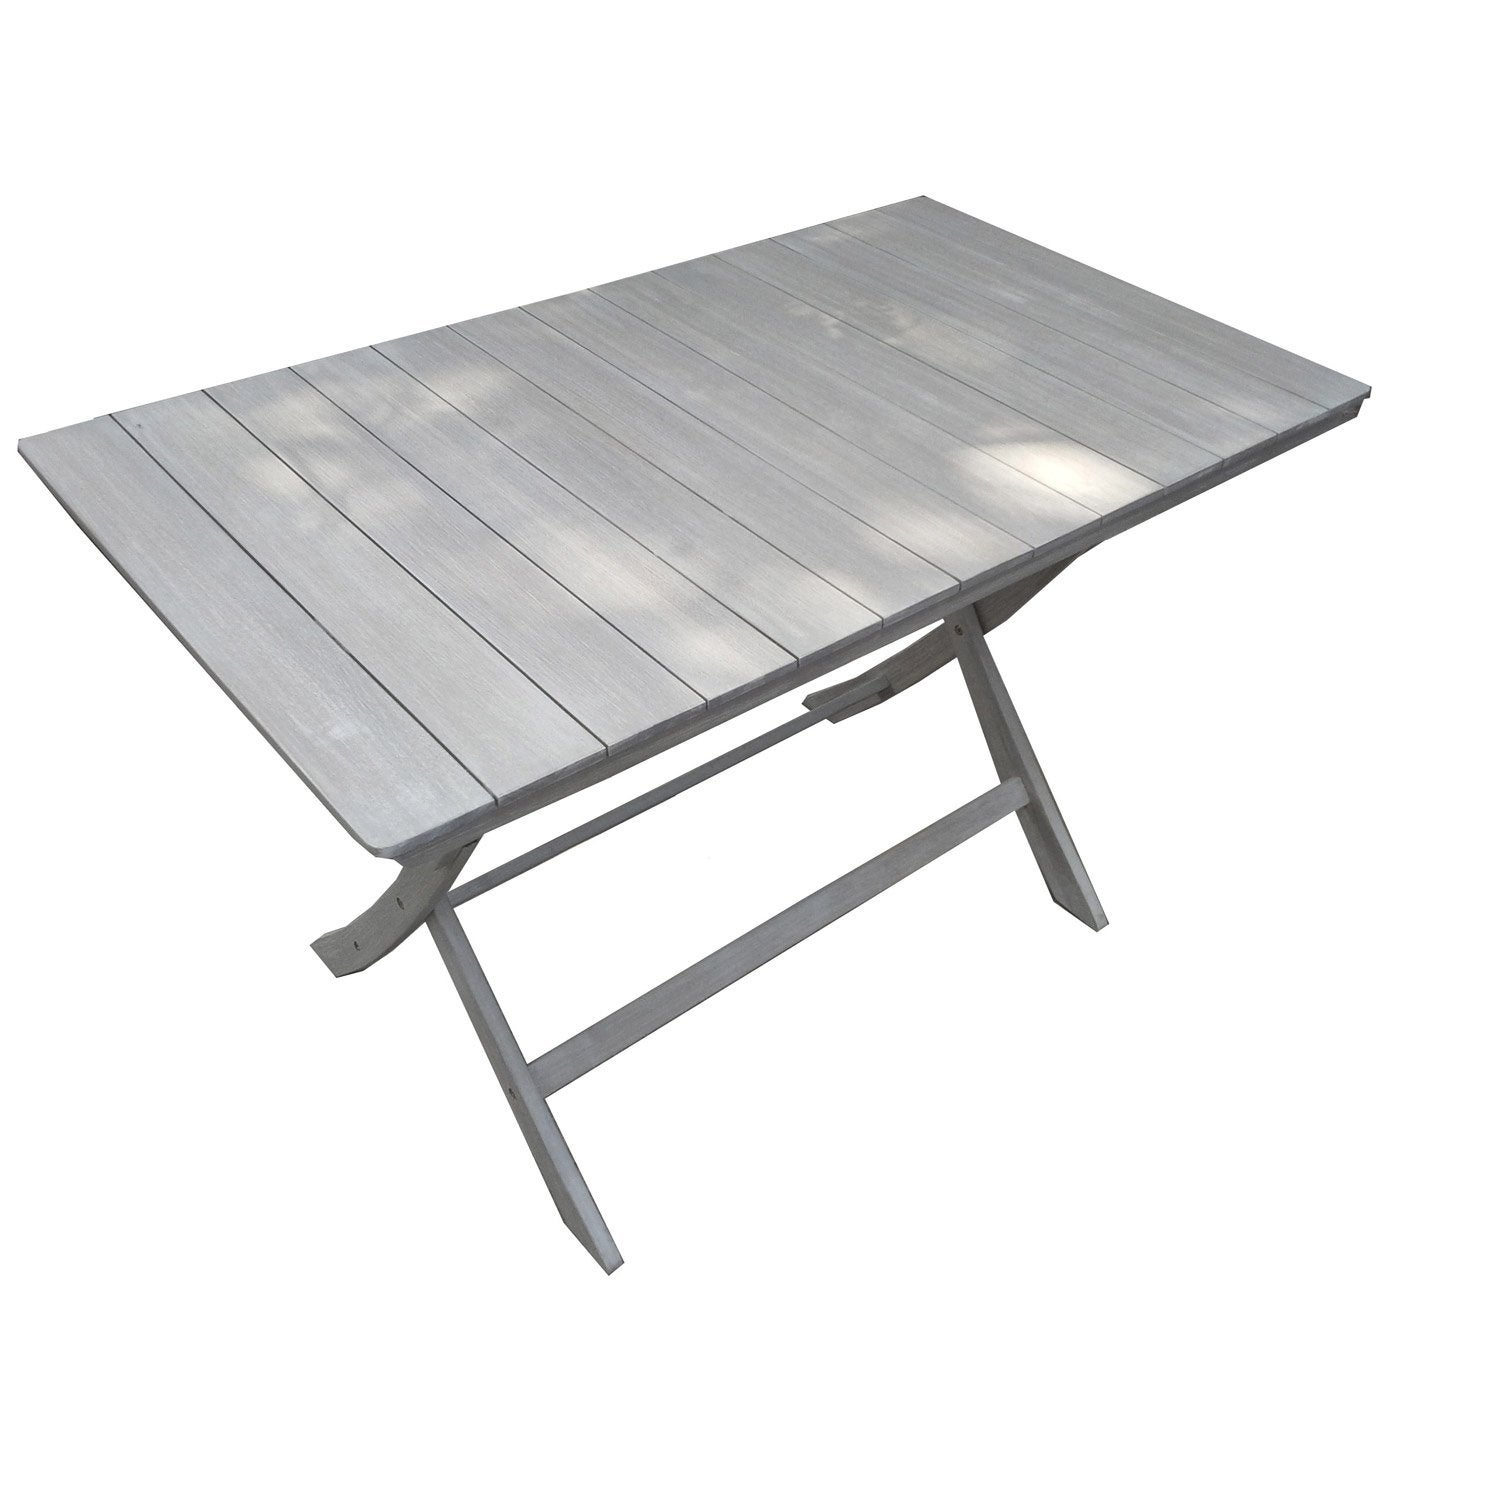 Castorama Exterieur Table Of Table De Jardin Naterial Portofino Rectangulaire Gris 4